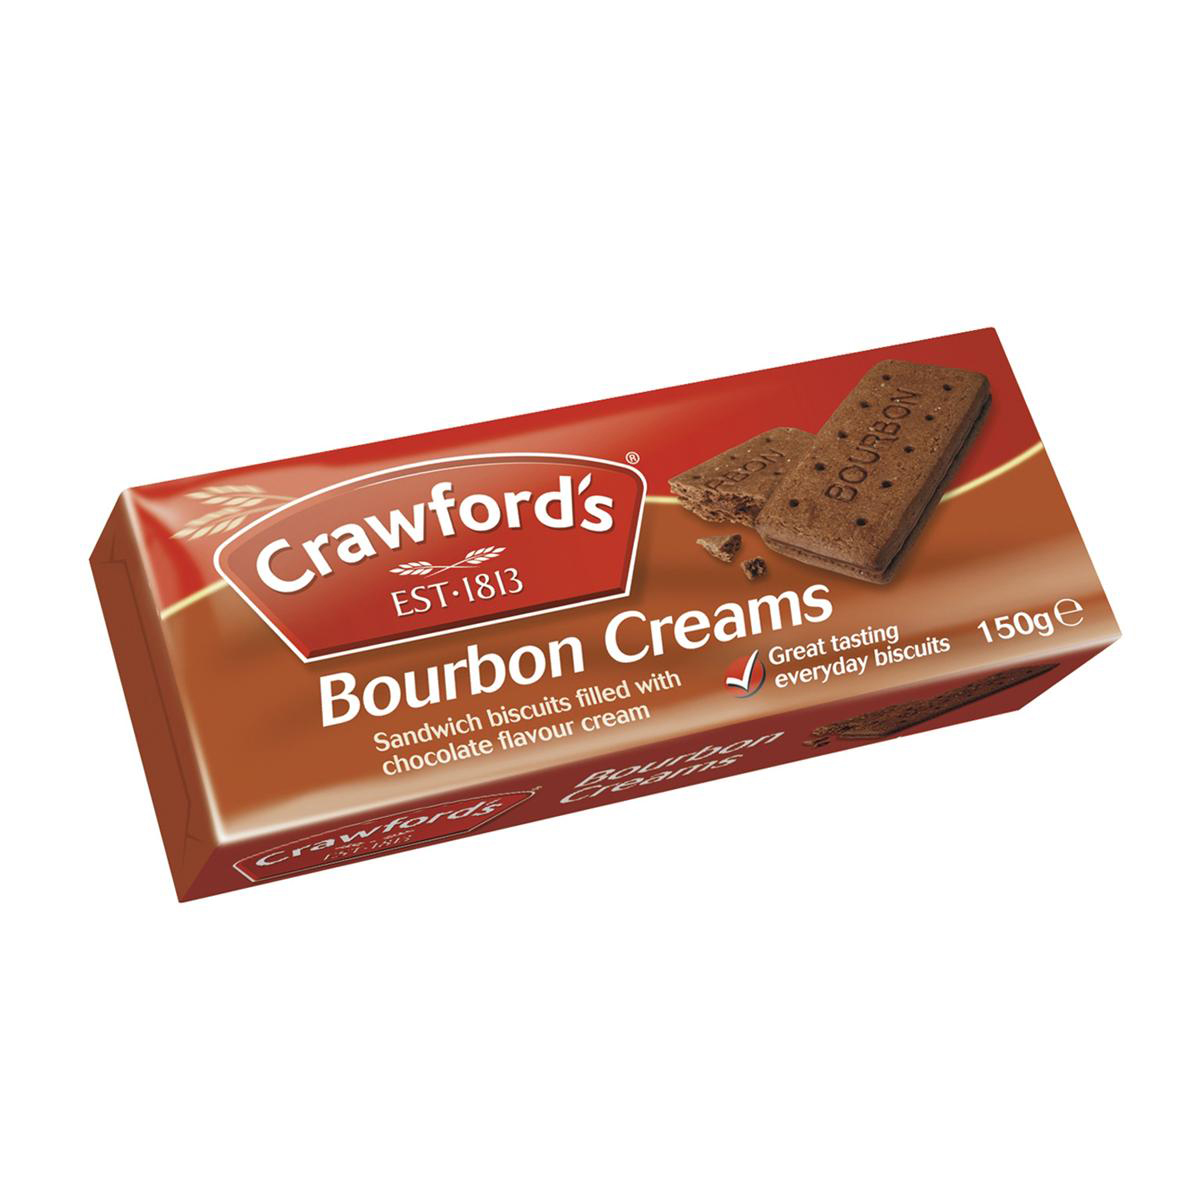 Crawfords Bourbon Biscuits 150g Pack 12 Ref UTB021